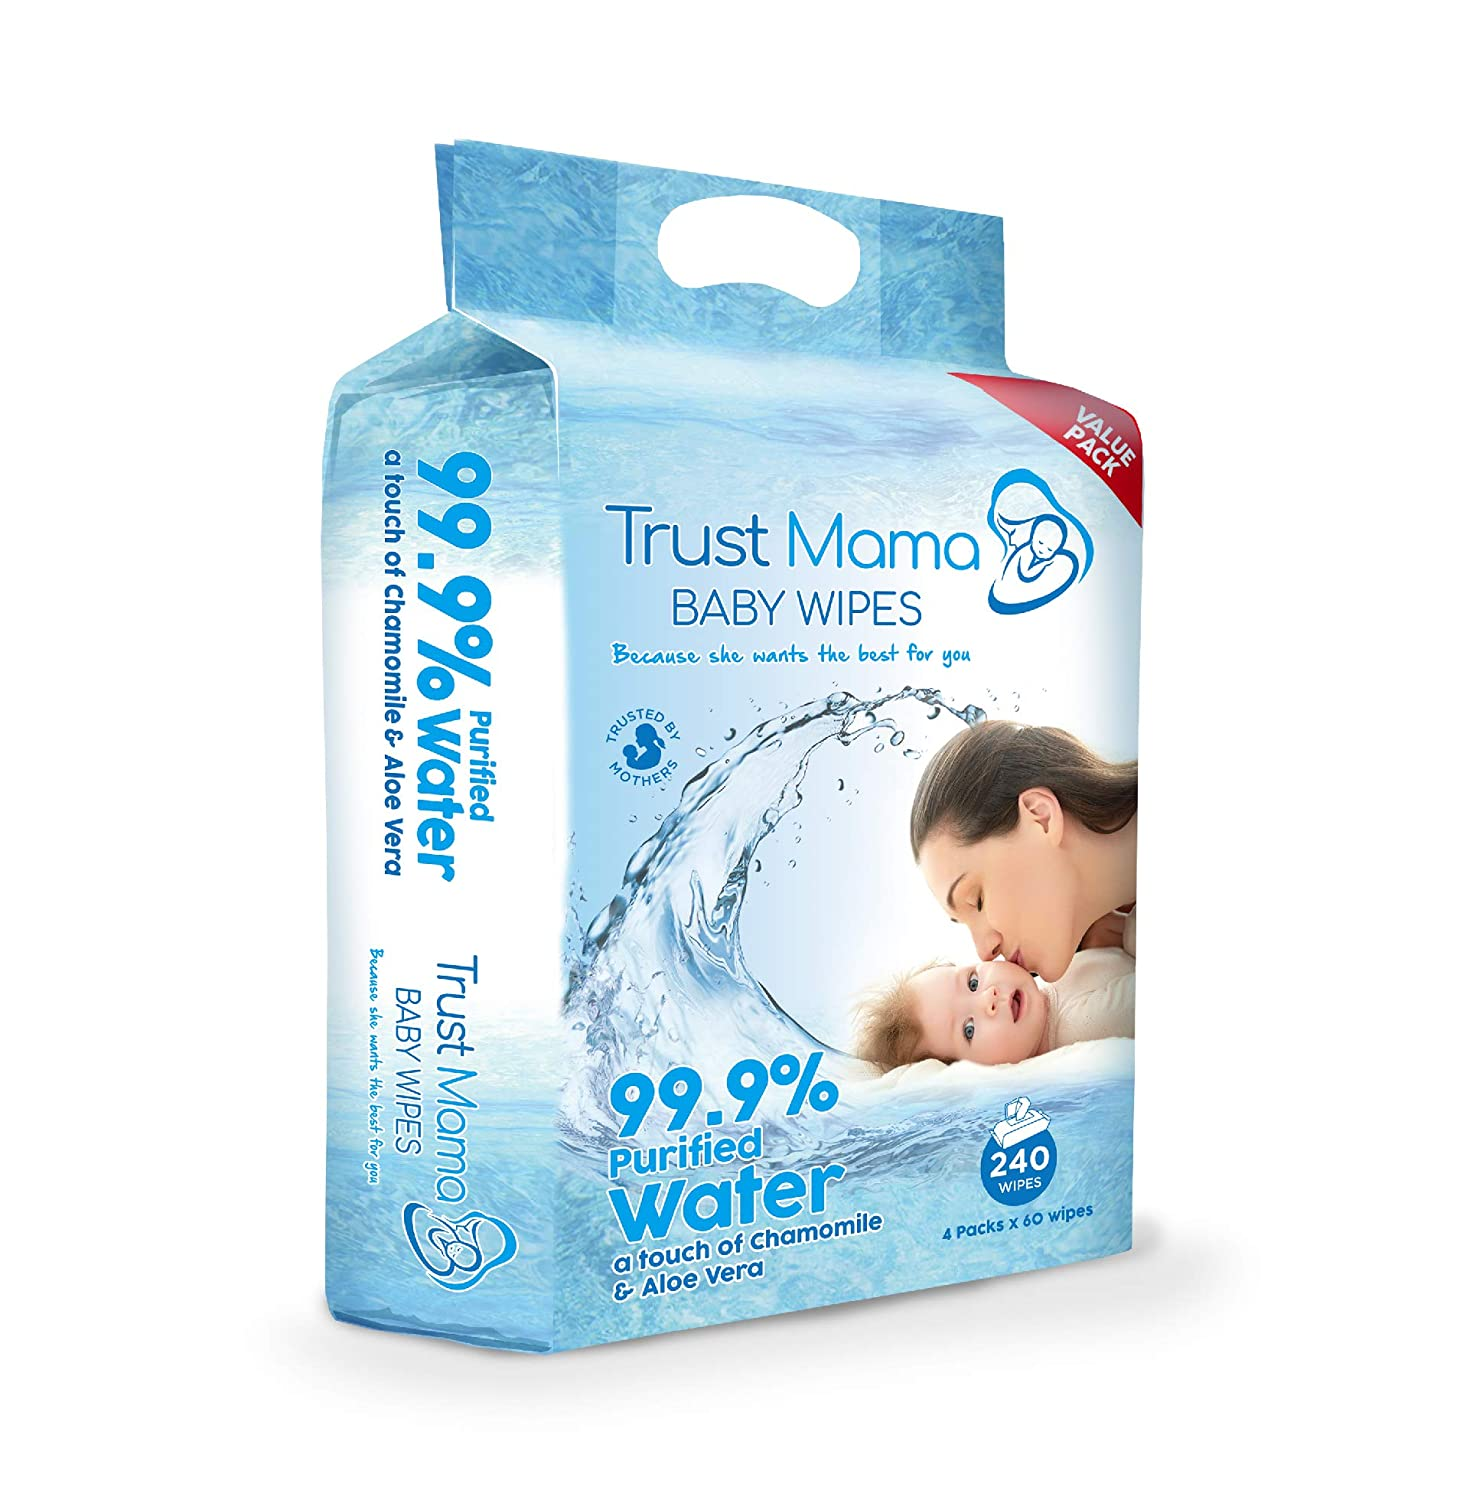 Trust Mama Baby Wipes Complete Clean Extra Sensitive Newborn Skin 99.9/% Water 240 Wipes 4 Packs of 60 Wipes